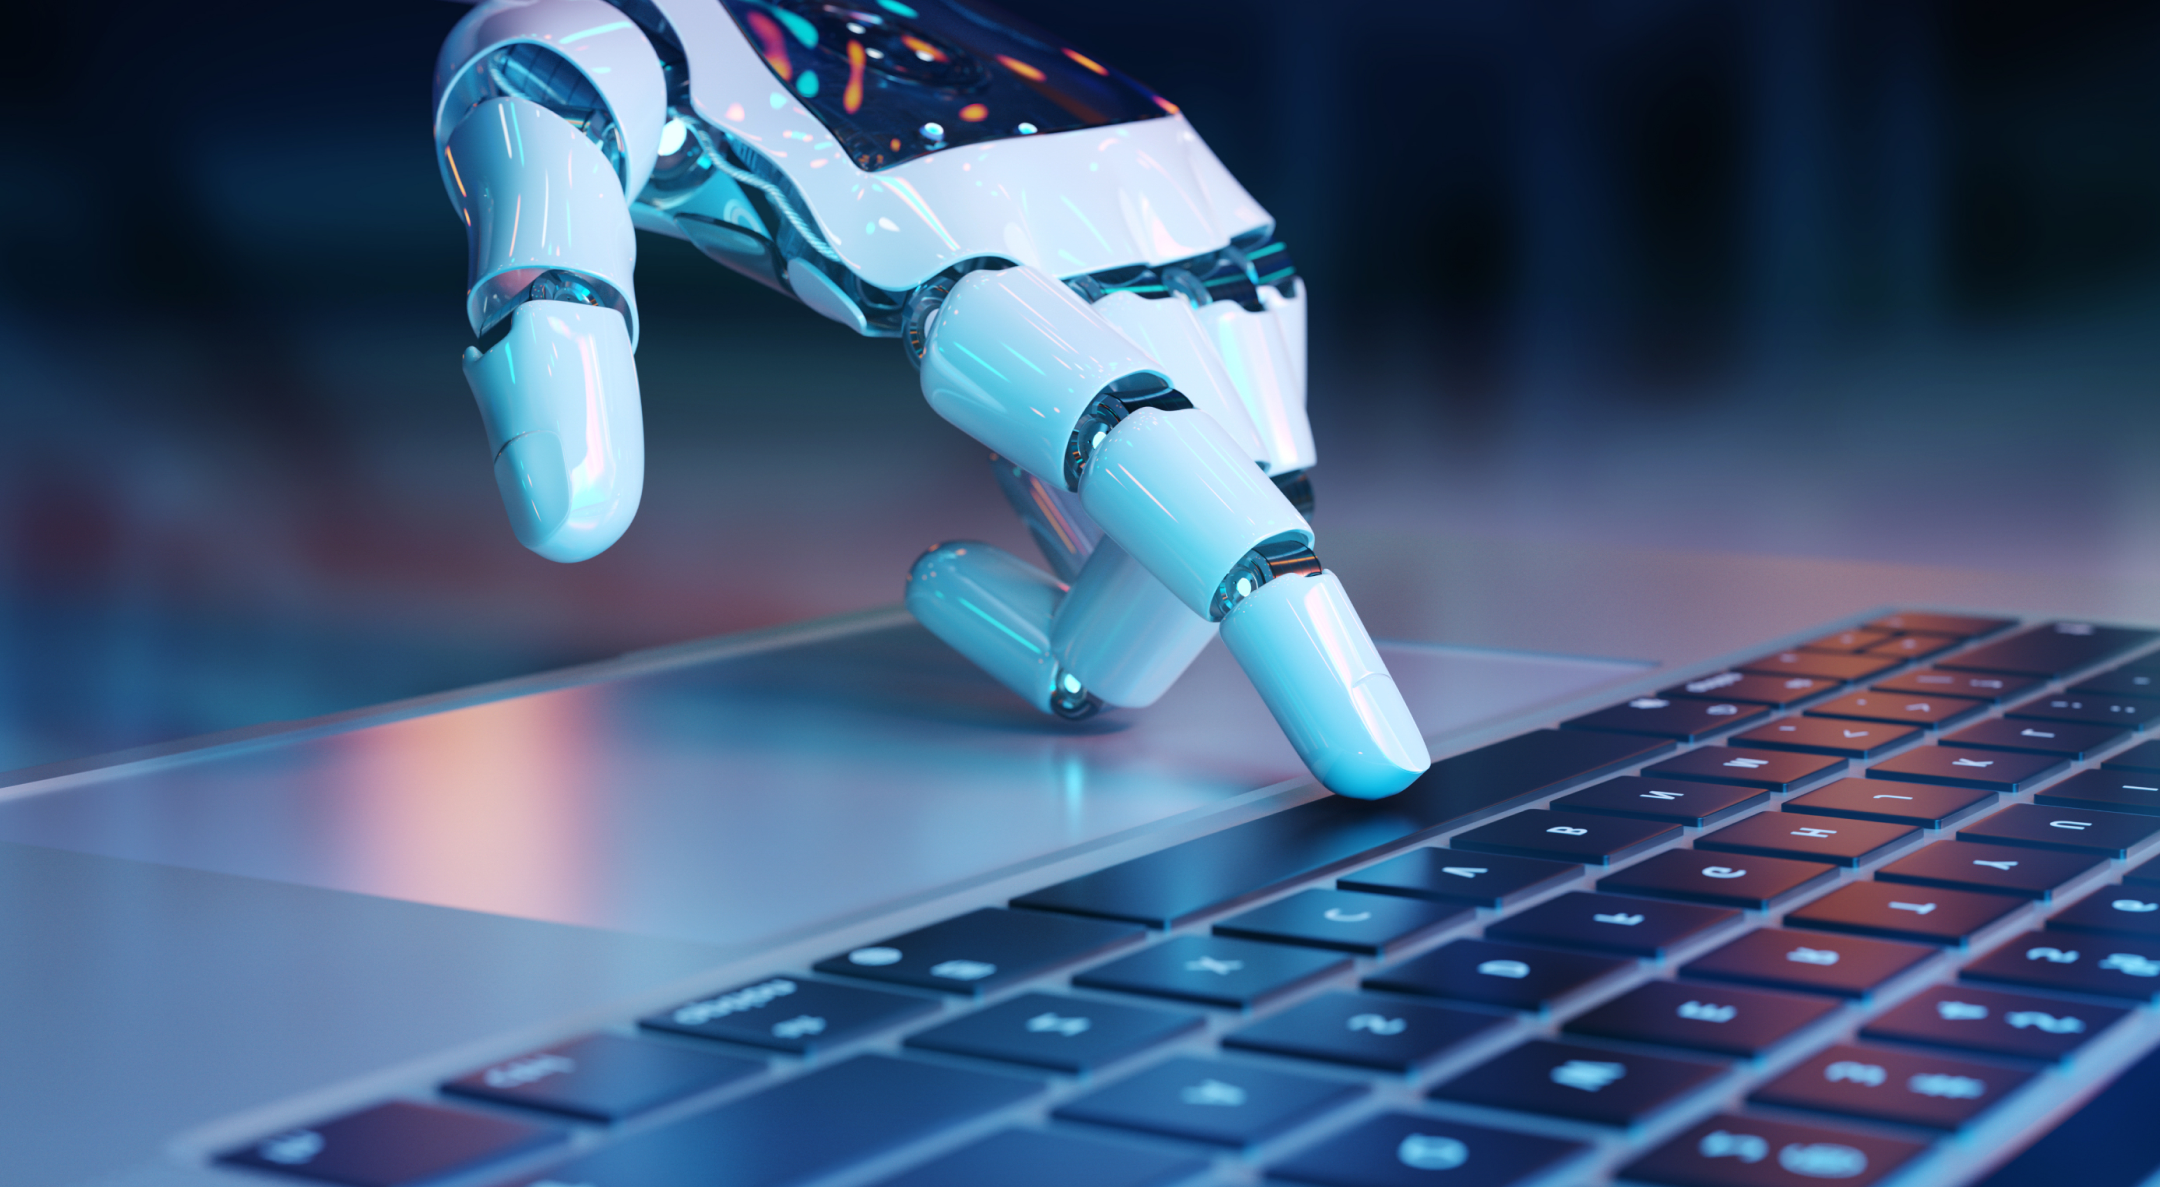 Articles About New and Interesting Technologies in the World of Software Engineering. Our blog helps you to unpack some of technology's more complex advancements and innovations to inspire you to create what's next.